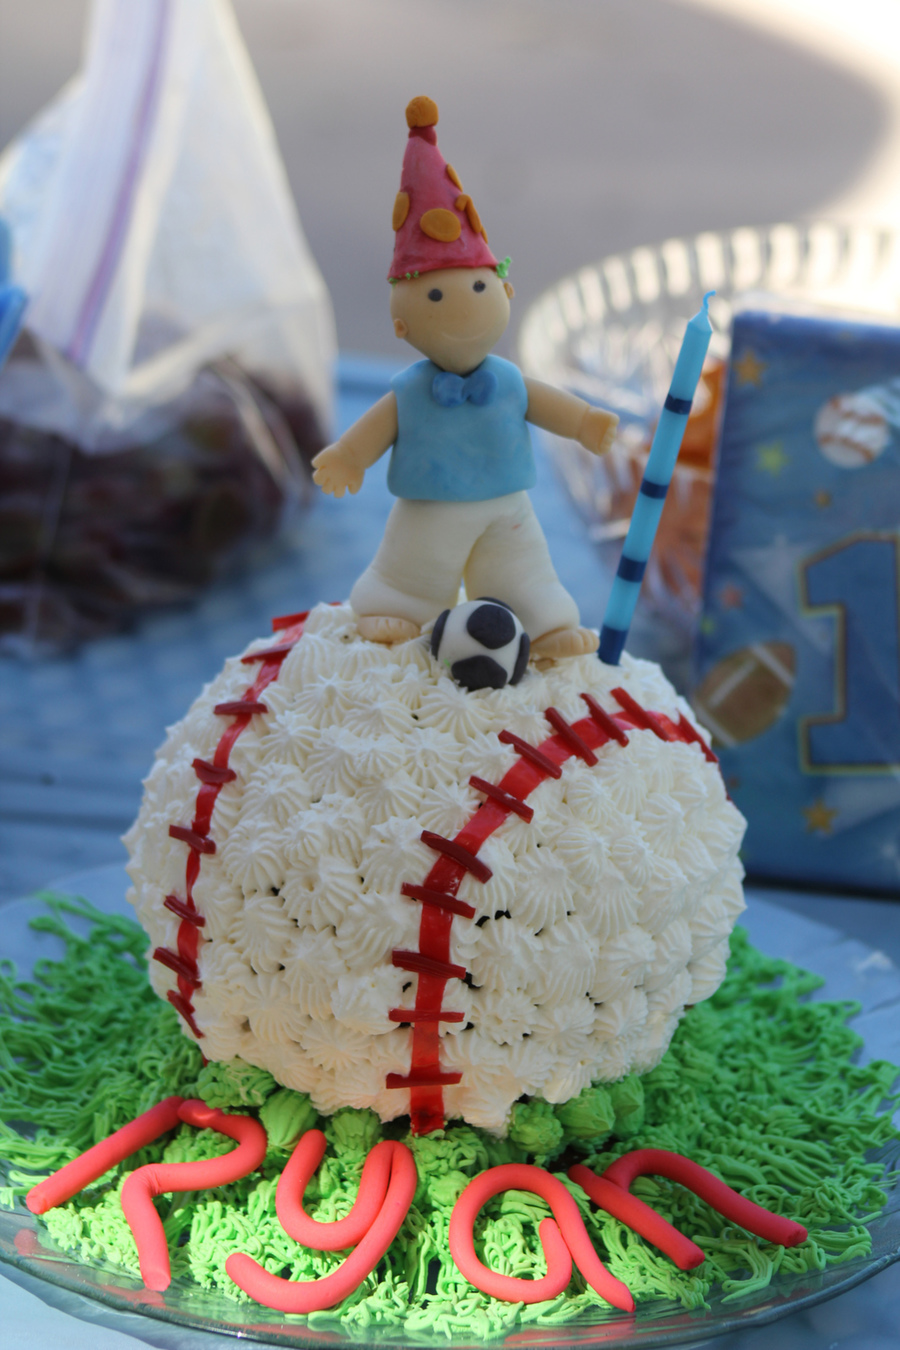 1St Birthday Smash Cake I Used Fruit Roll Ups To Make The Stitches On The Ball And The Little Boy On Top Is All Fondant on Cake Central